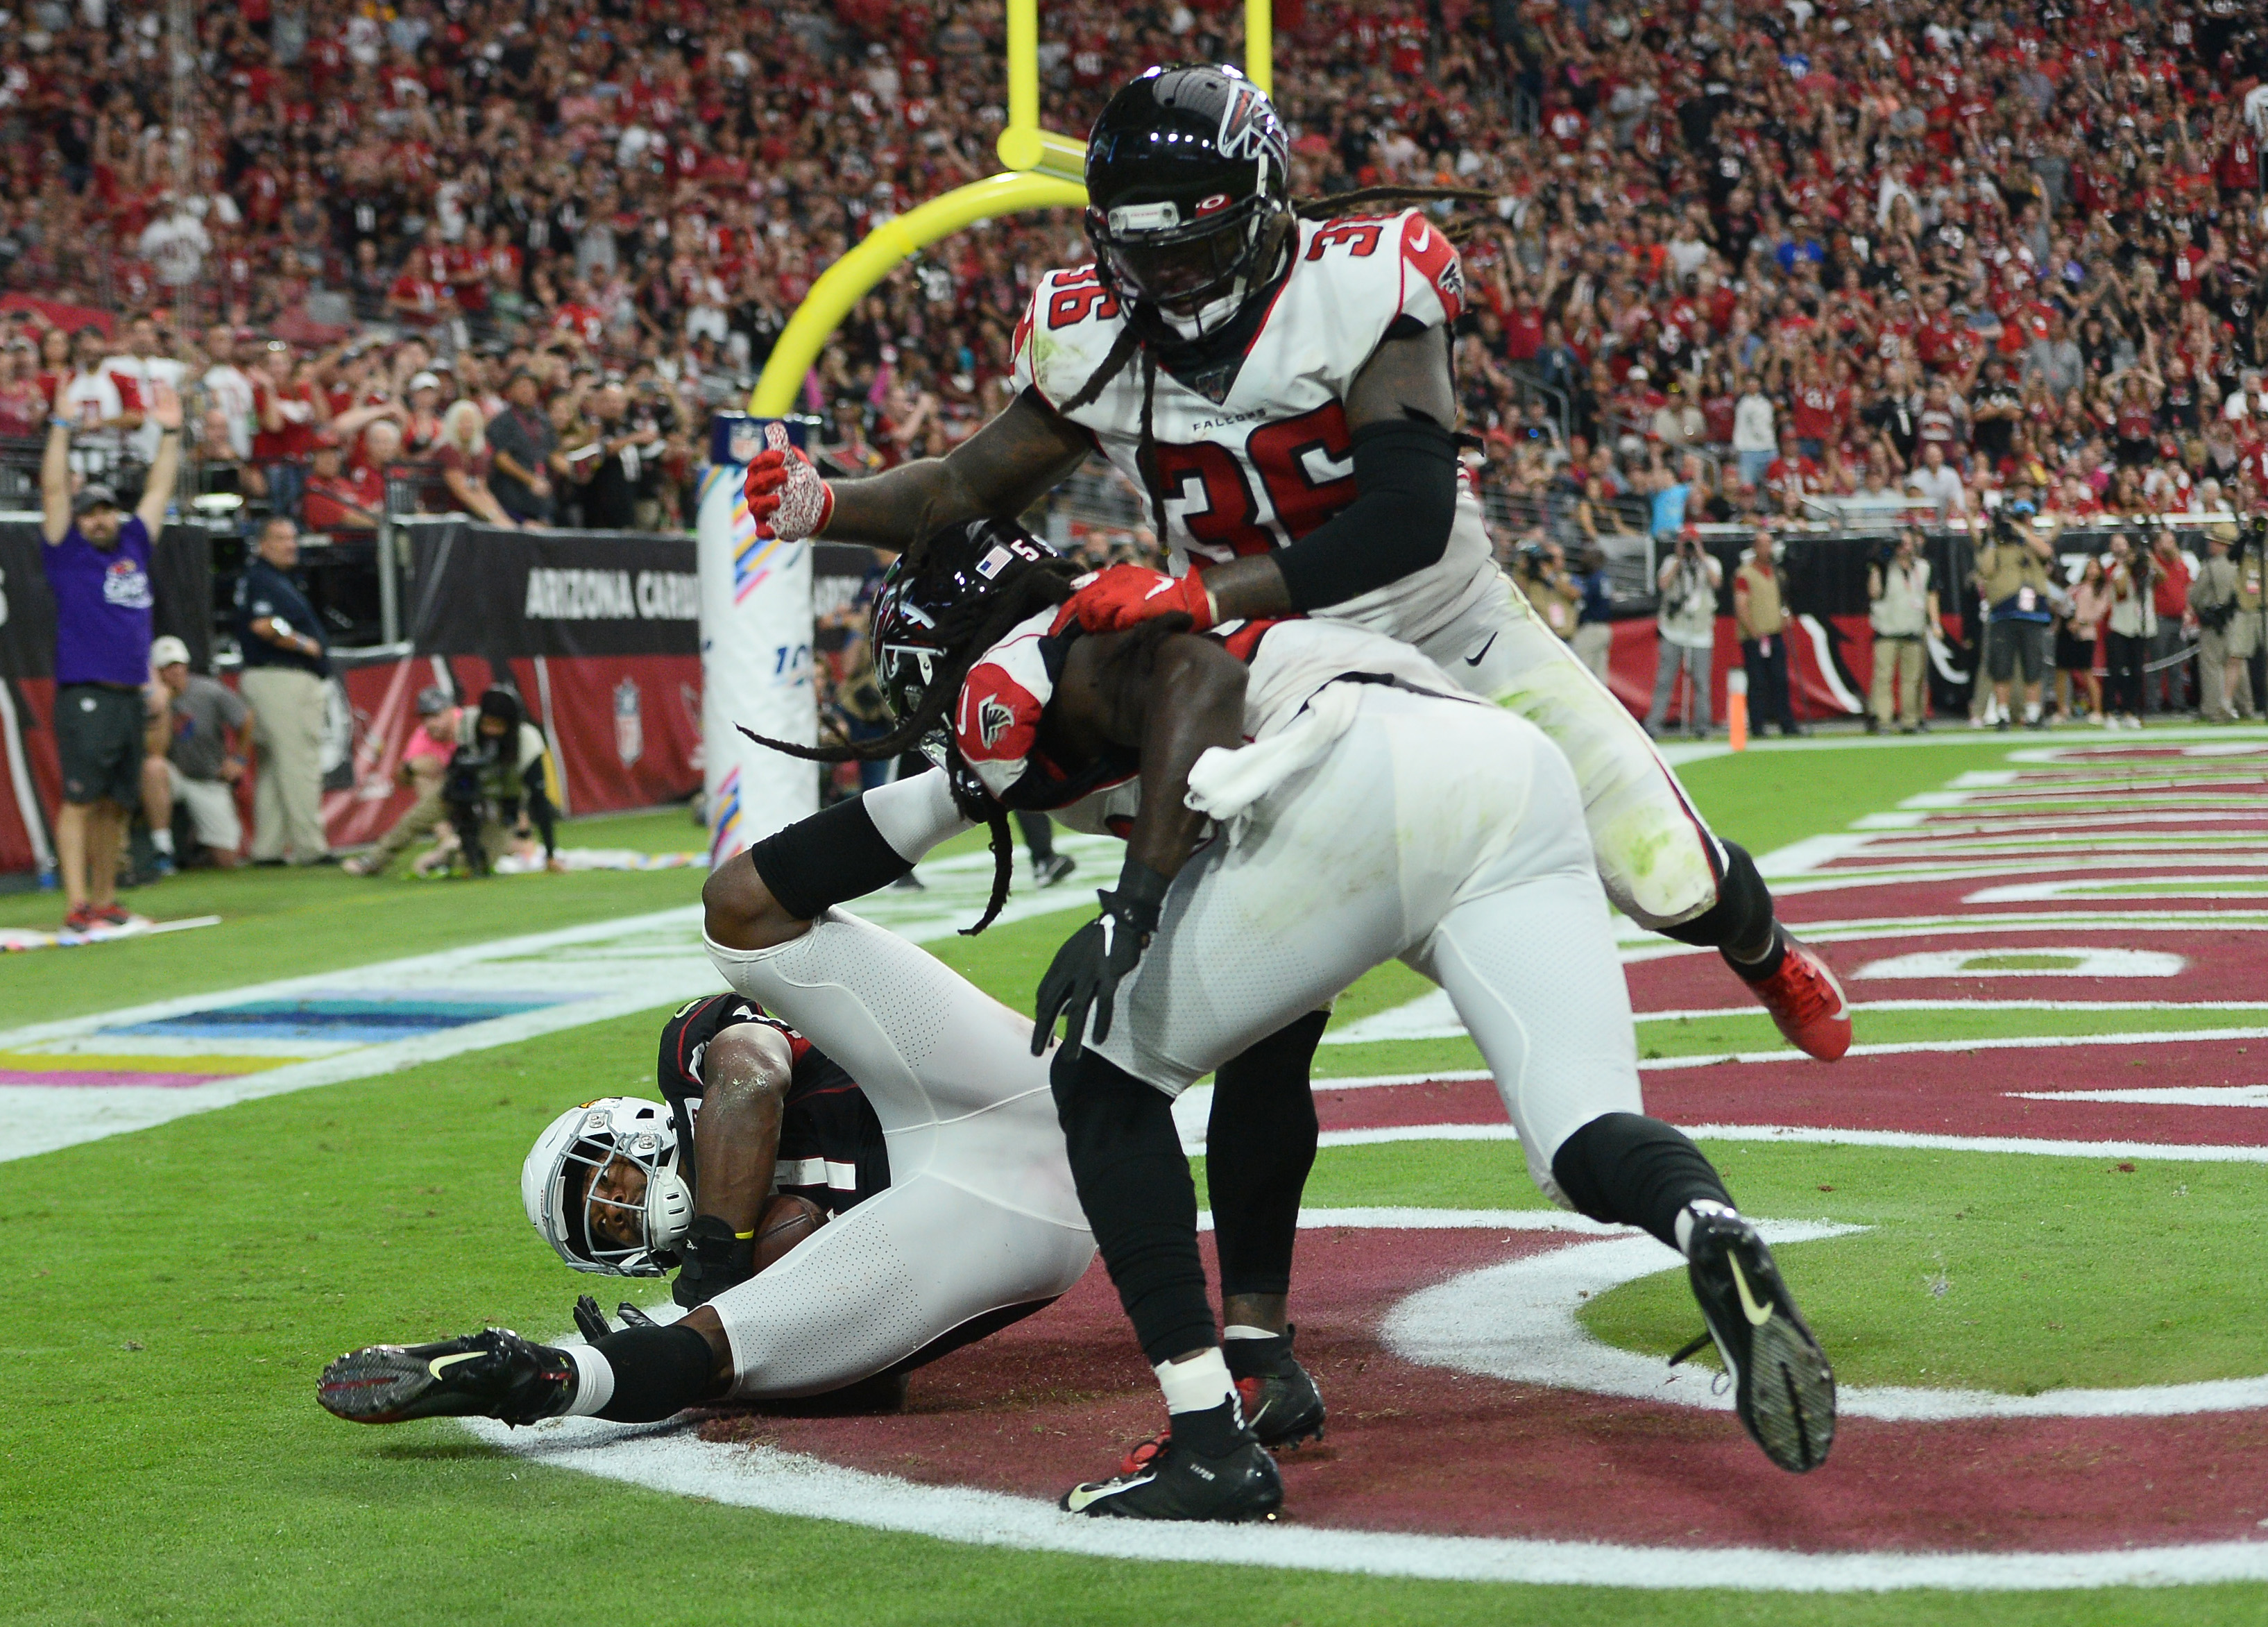 NFL: Atlanta Falcons at Arizona Cardinals